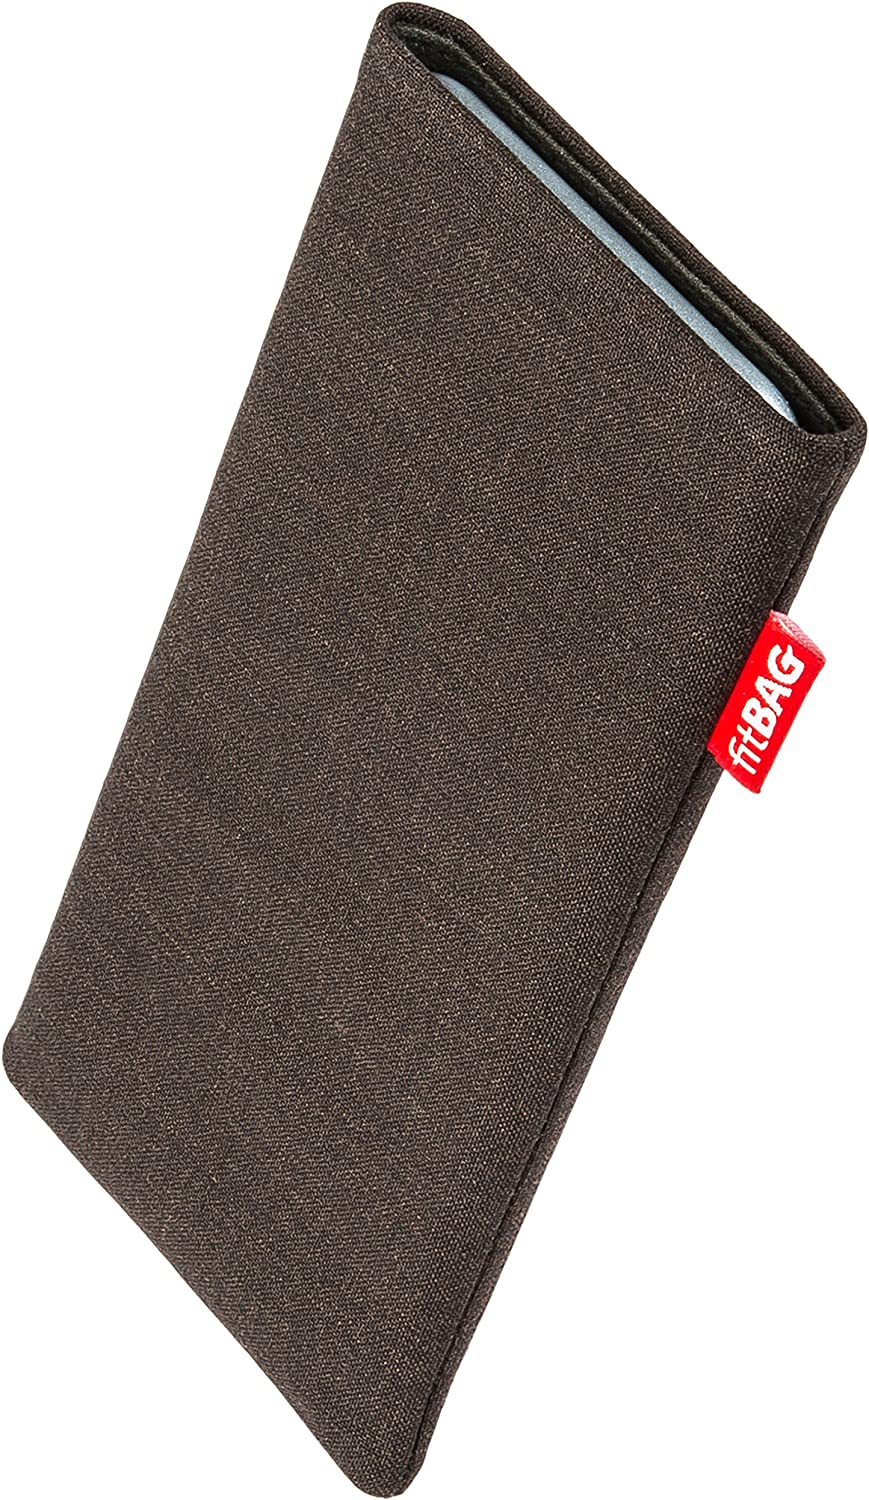 Made in Germany fitBAG Jive Gray custom tailored sleeve for Sony Xperia XZ2 Compact Fine suit fabric pouch case cover with MicroFibre lining for display cleaning